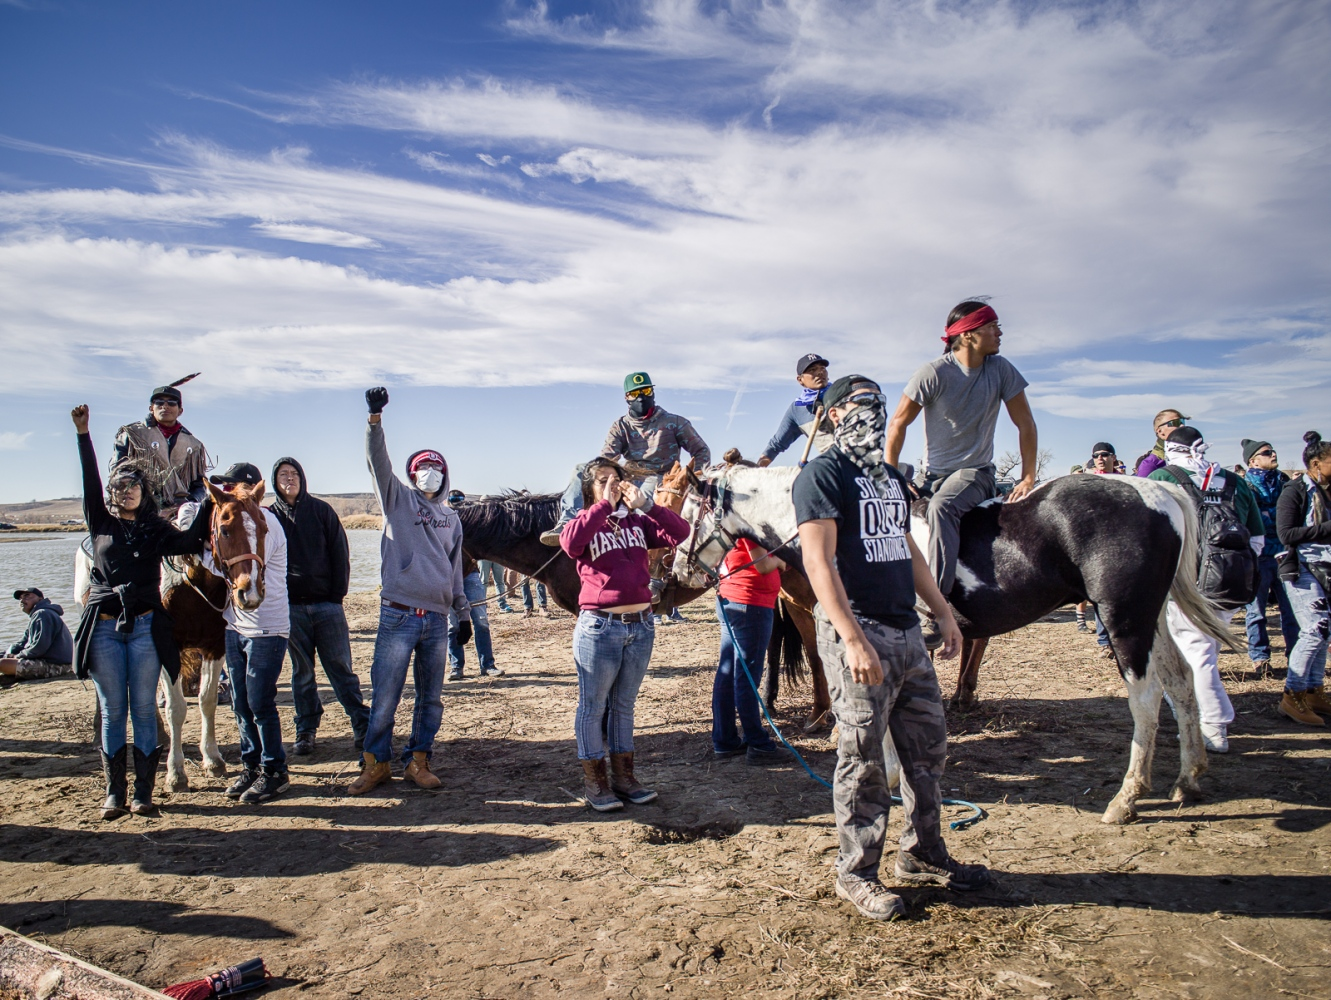 Art and Documentary Photography - Loading nodapl_88.jpg